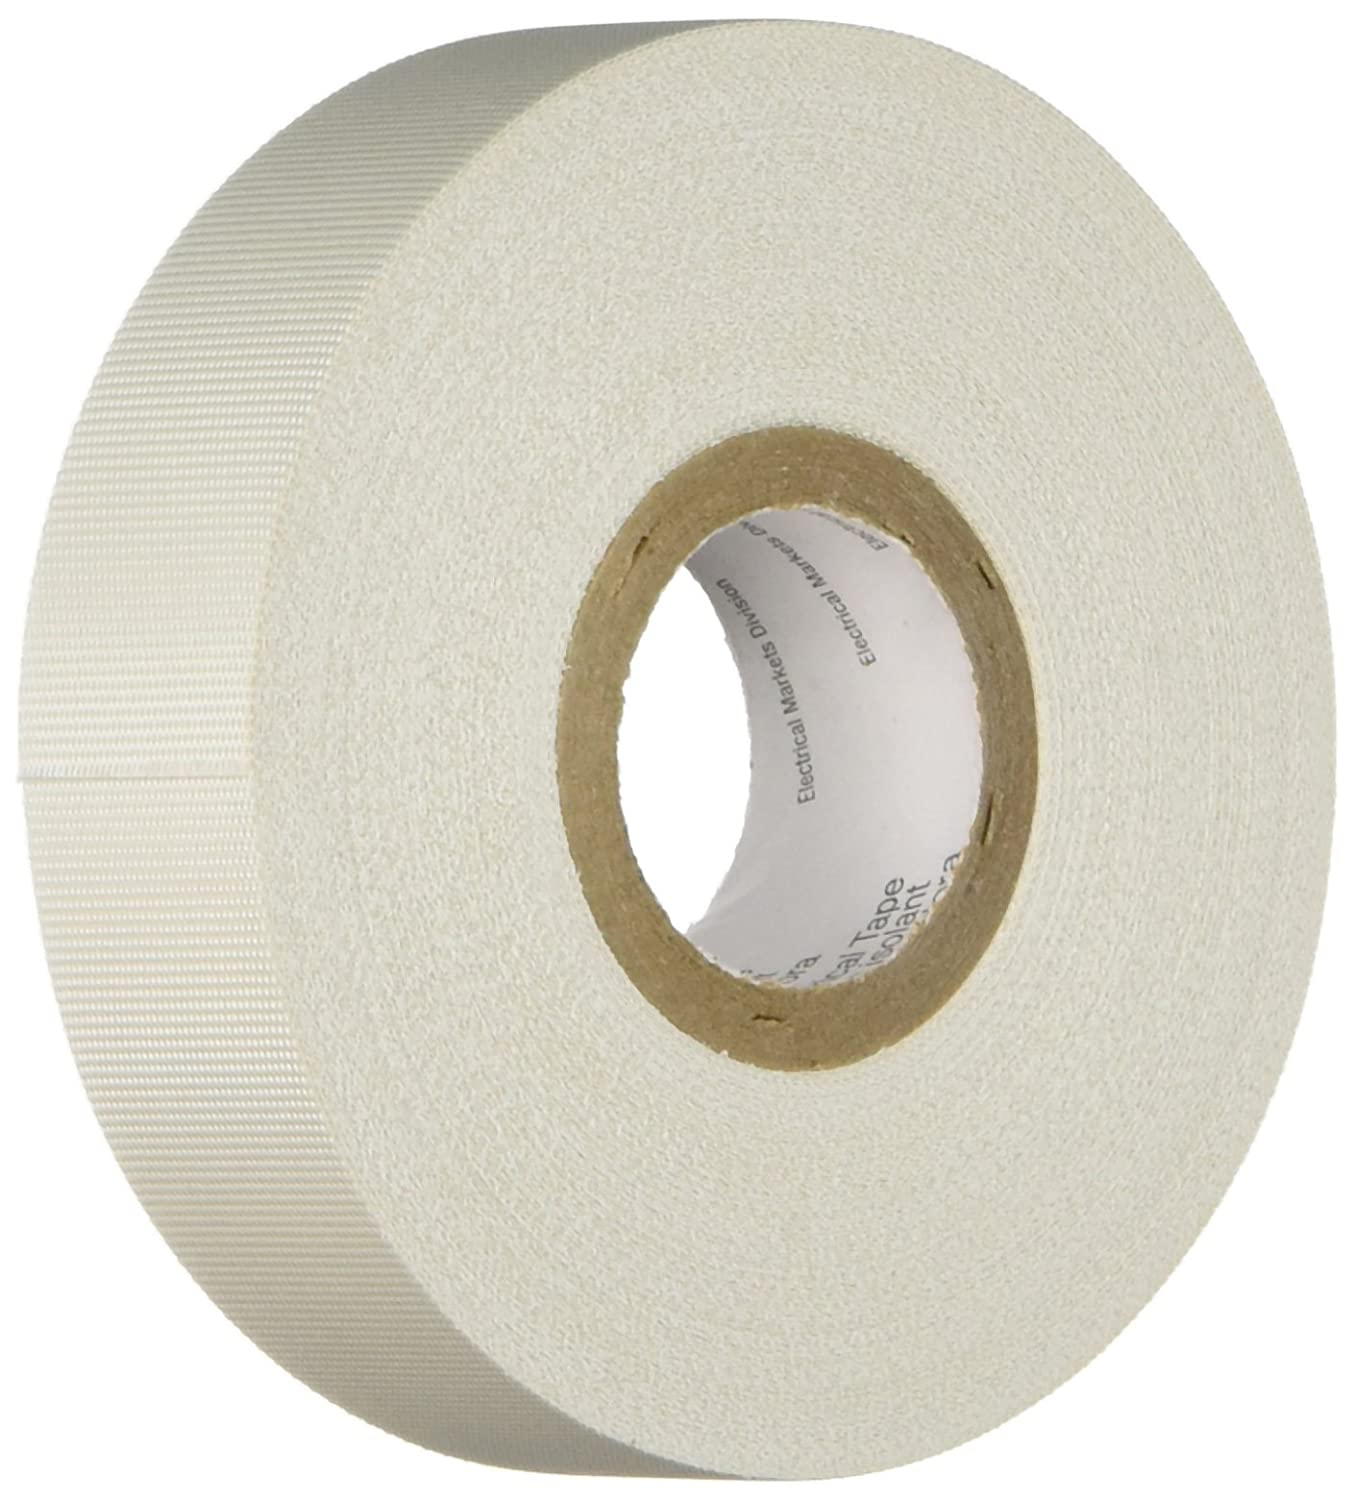 713pshFsAWL._SL1500_ amazon com 3m glass cloth electrical tape 27, white, rubber 3m harness tape at eliteediting.co